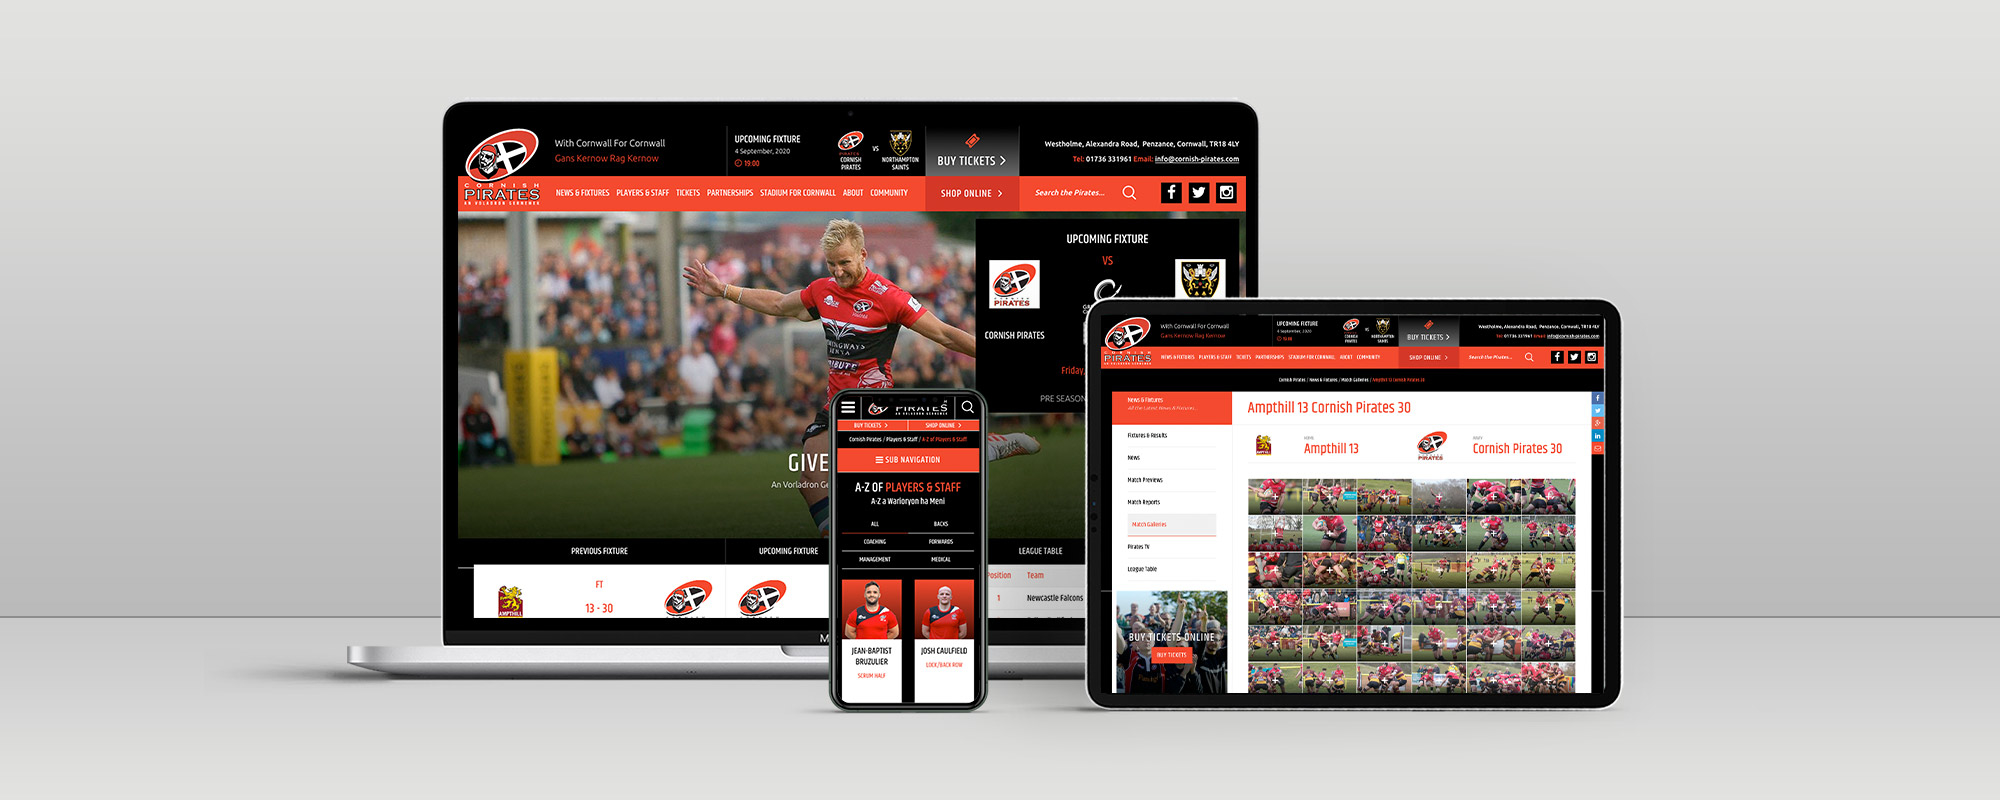 Cornish Pirates Wordpress Website Design on 3 Devices